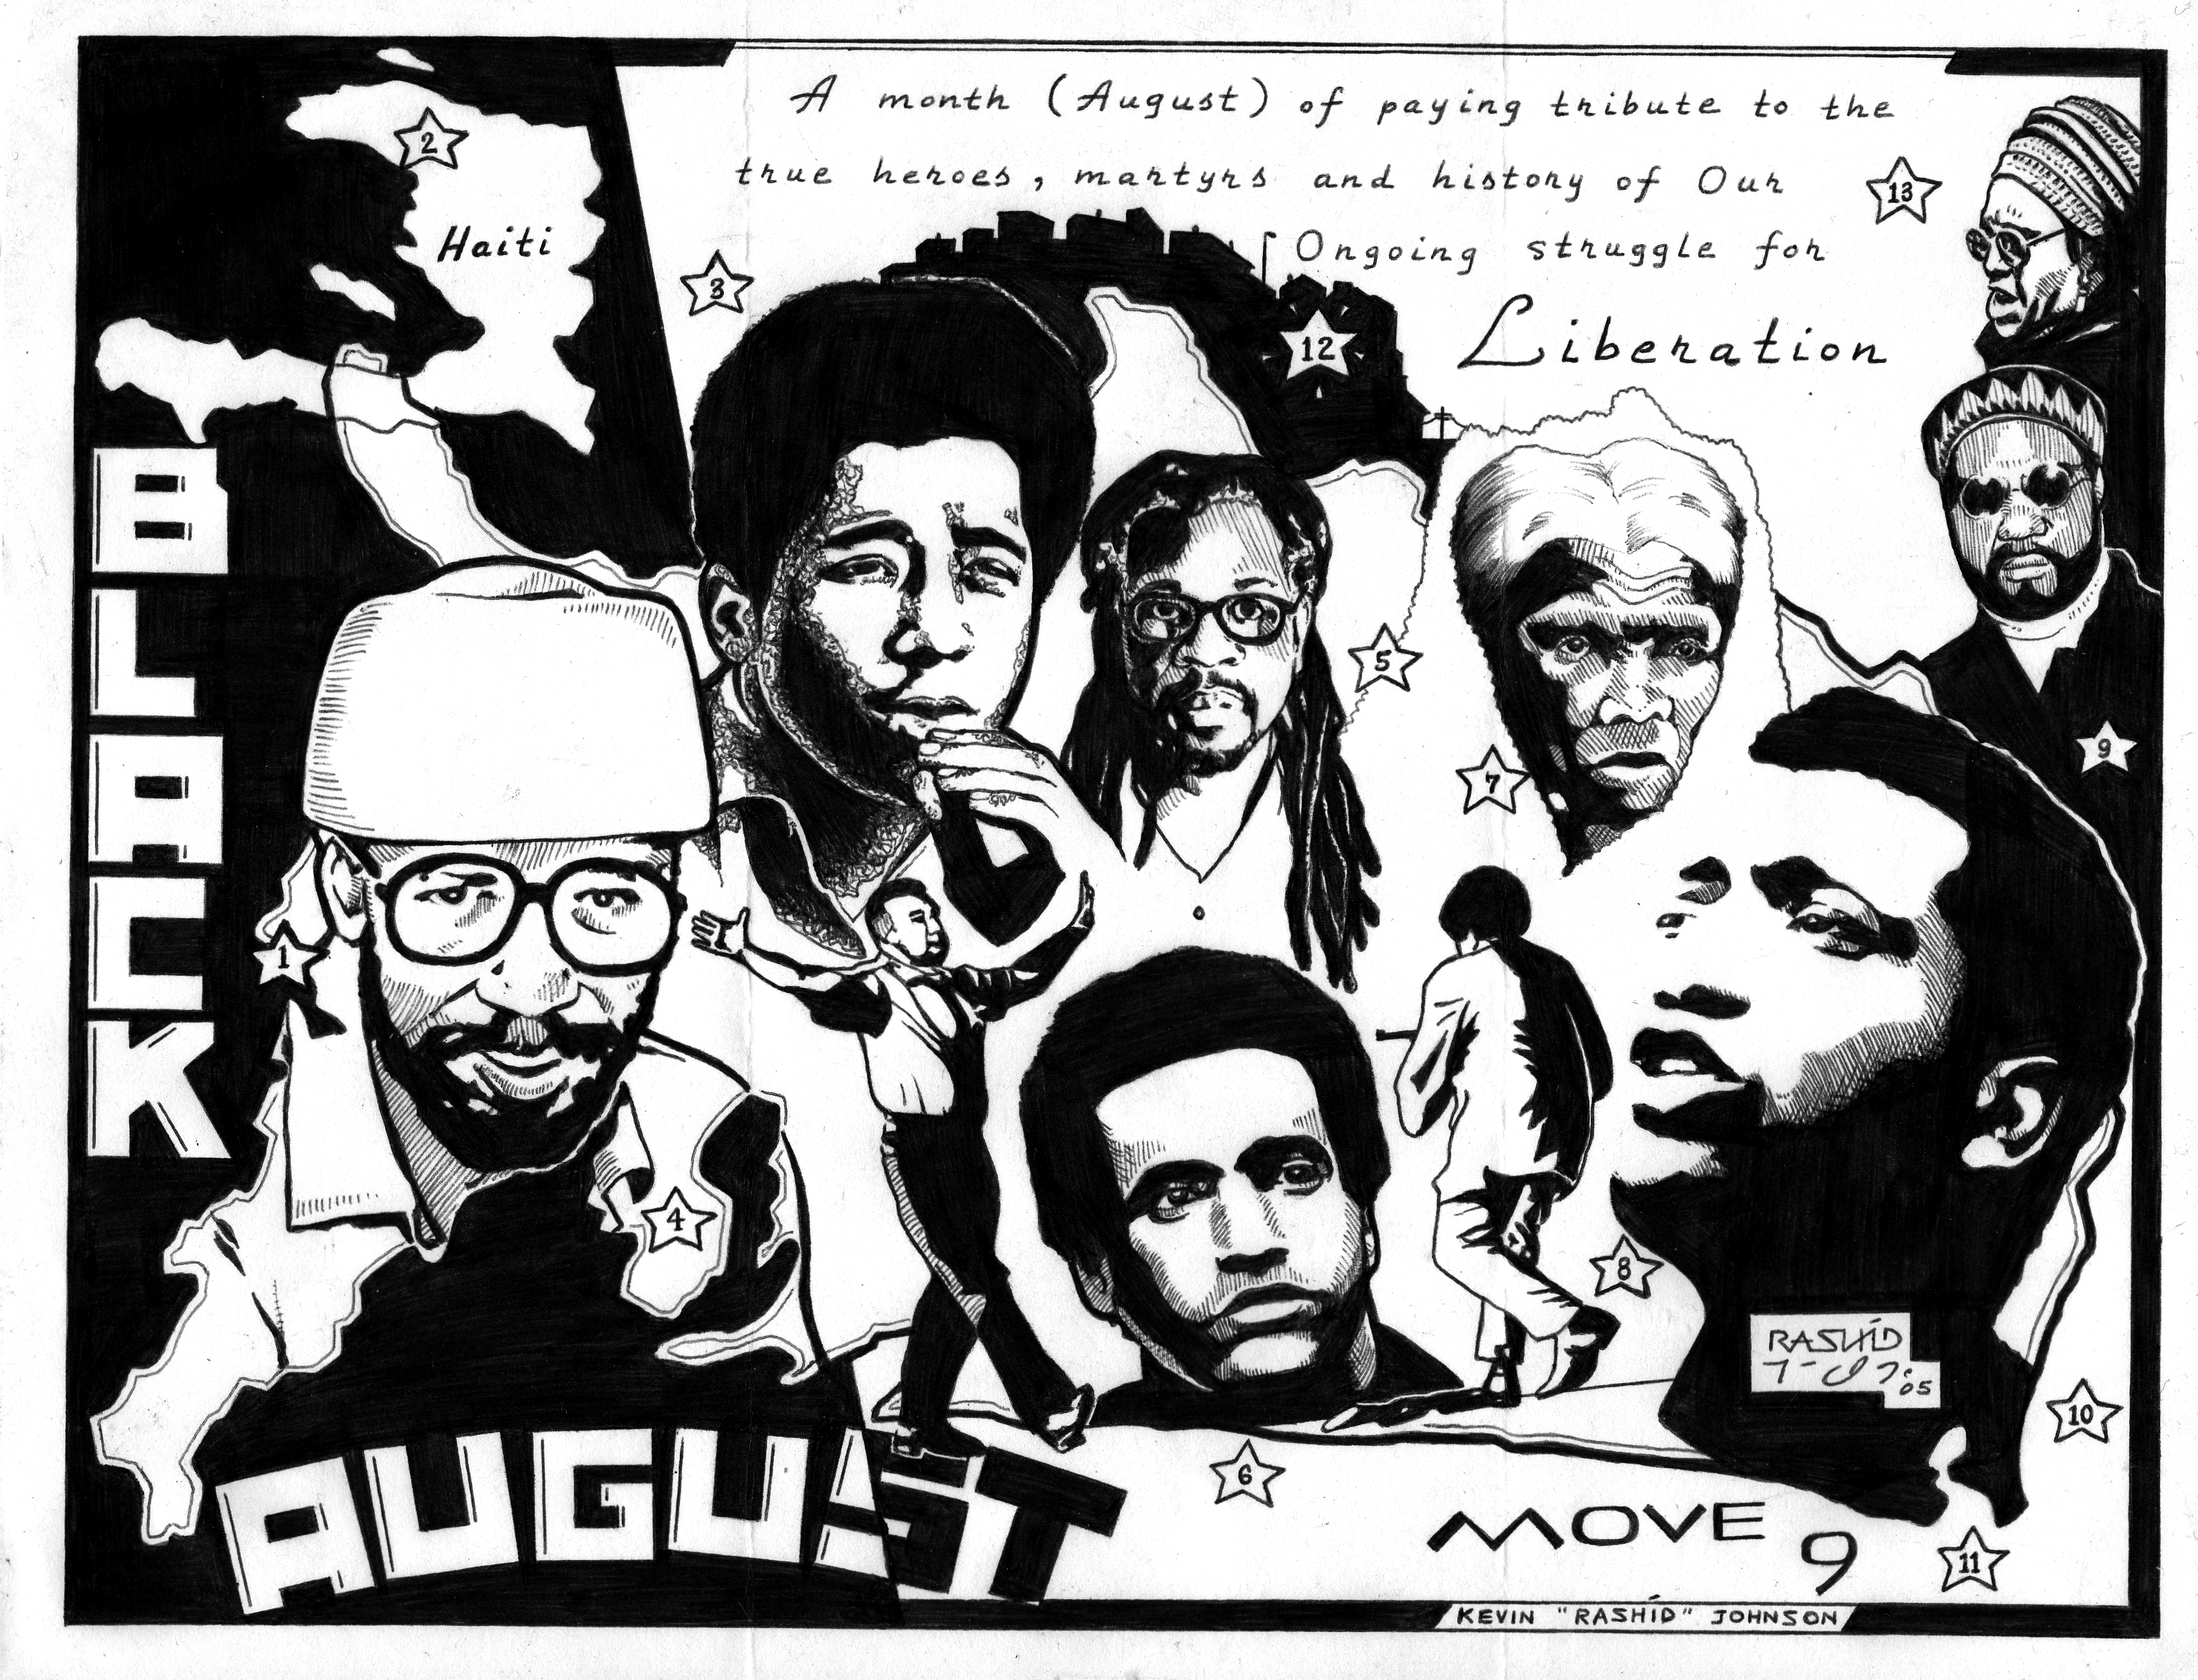 black august kevin rashid johnson